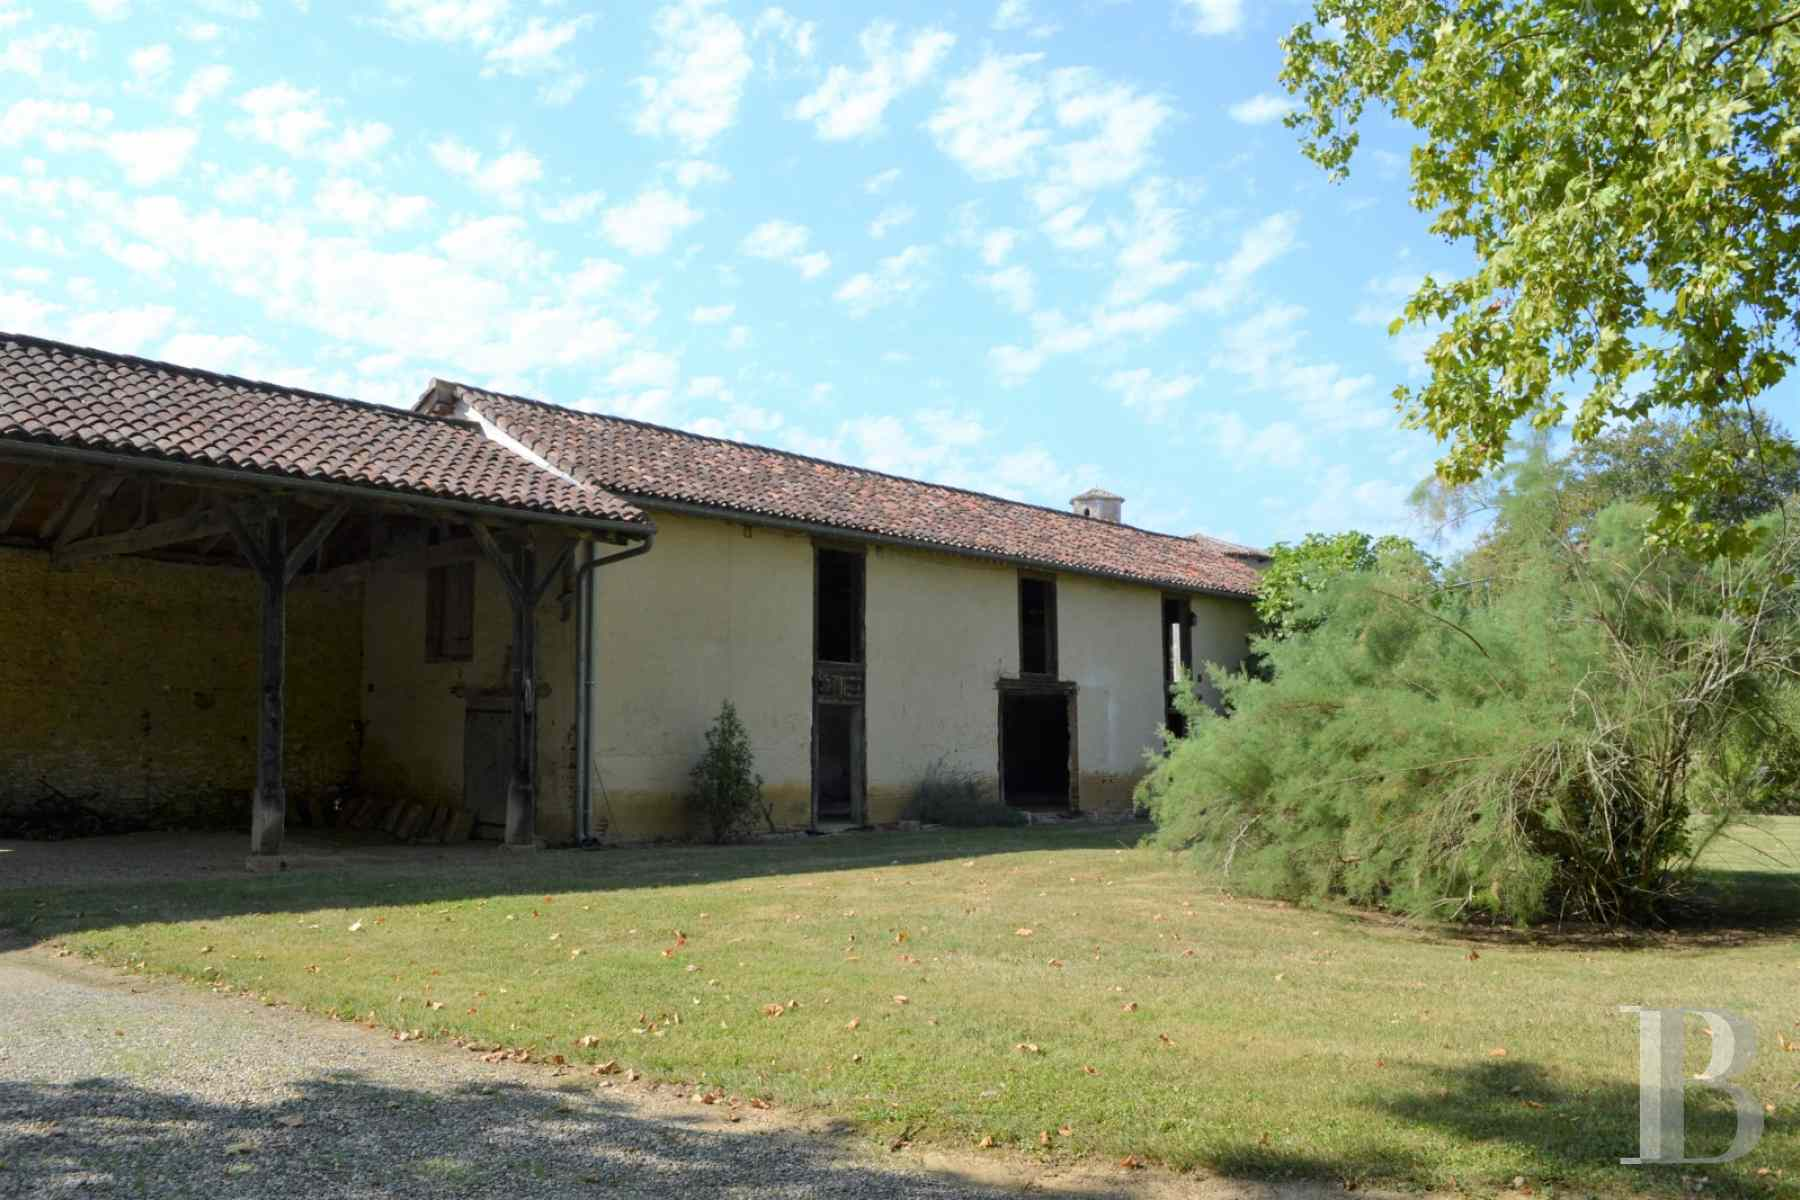 property for sale France aquitaine gascony armagnac - 19 zoom